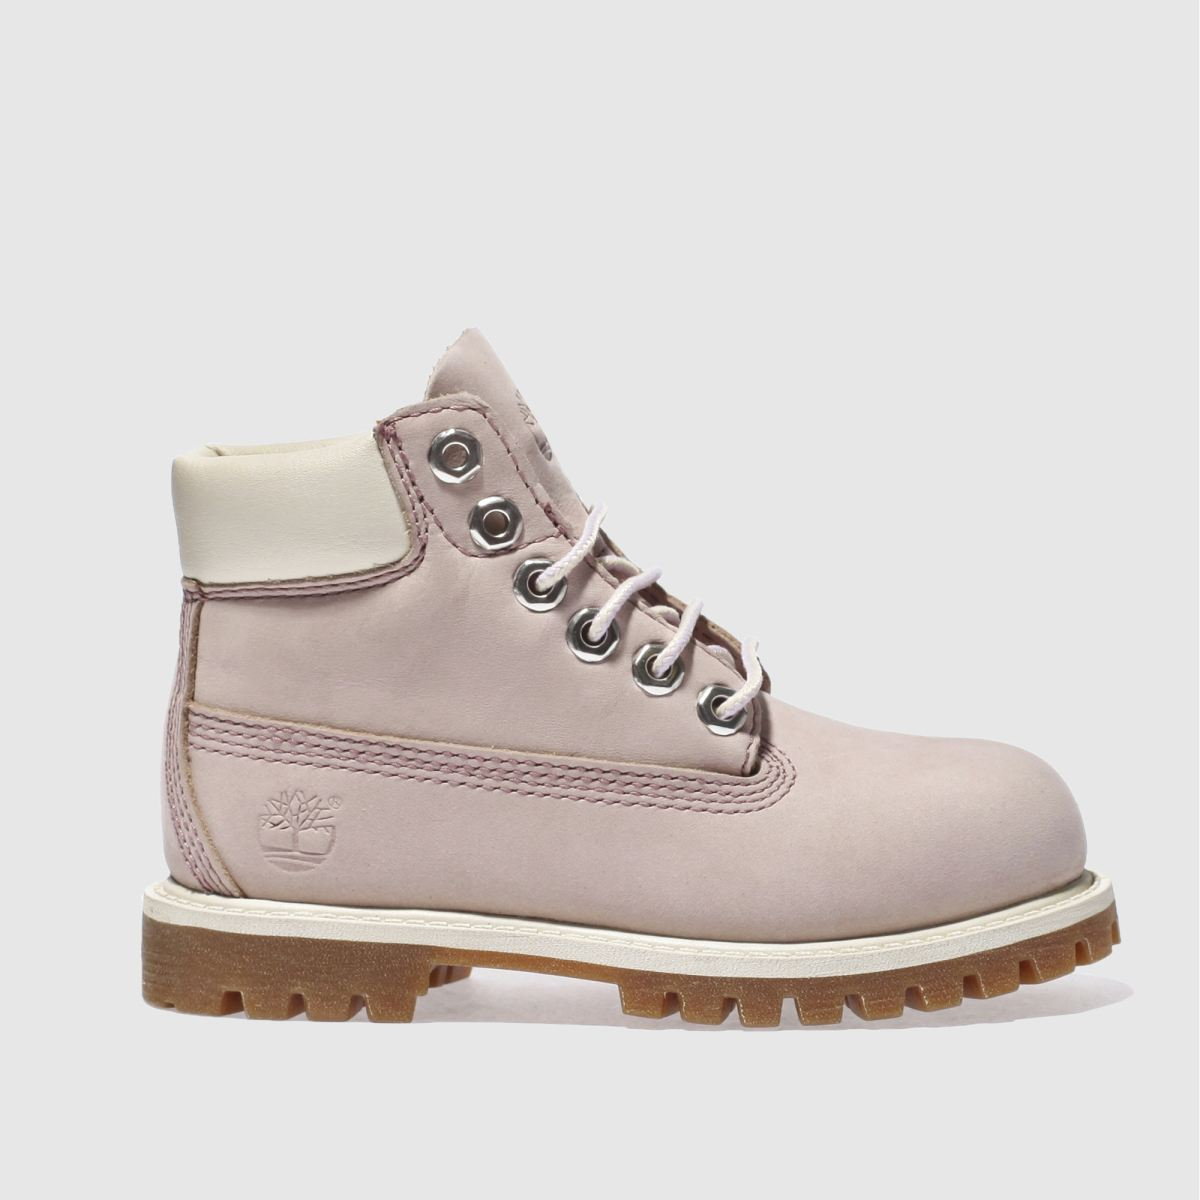 timberland pale pink 6 inch classic boot Girls Toddler Boots